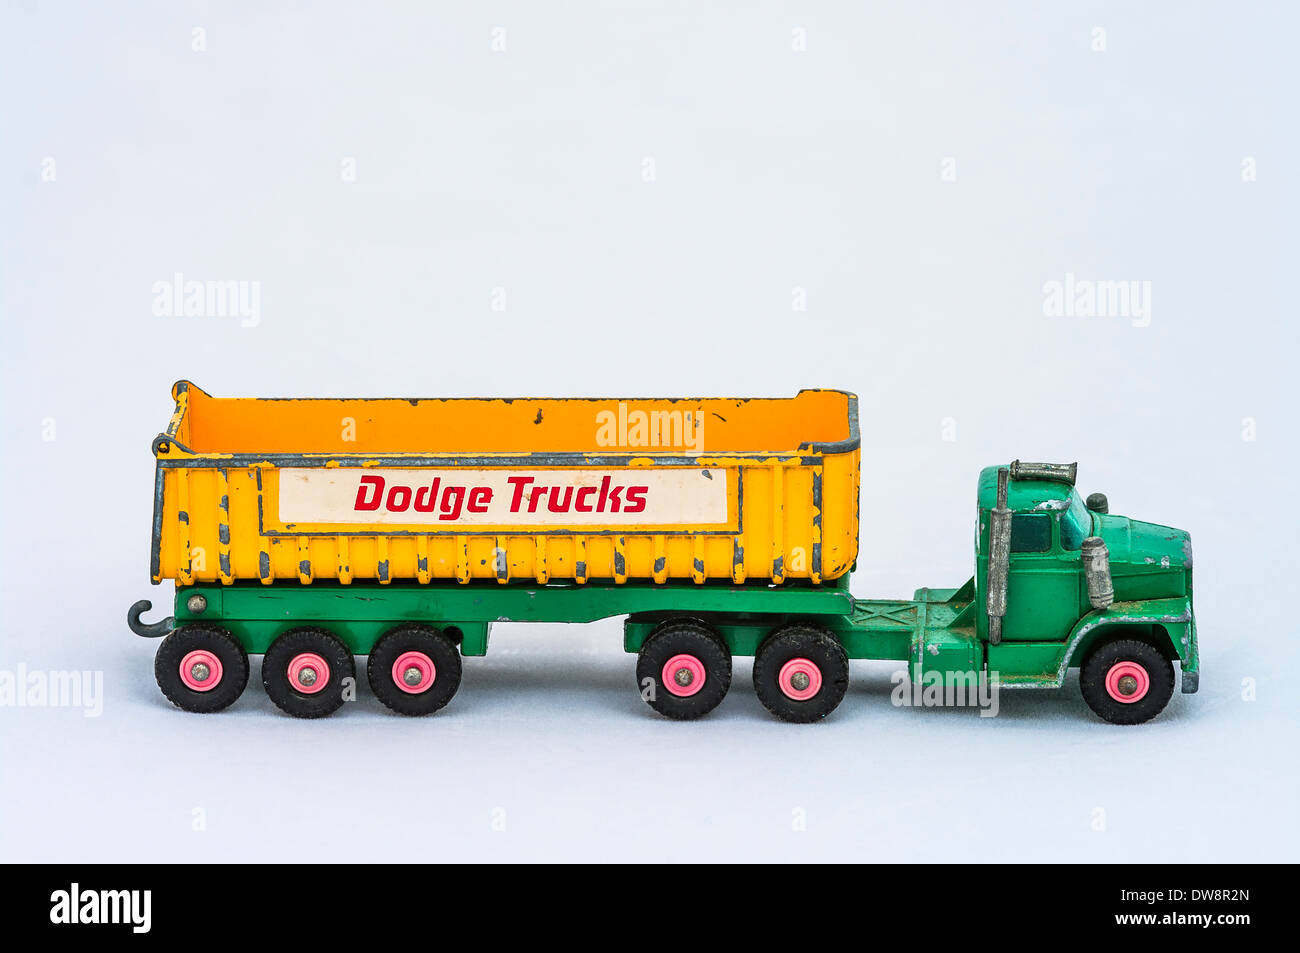 Dinky toy Dodge Truck - Stock Image